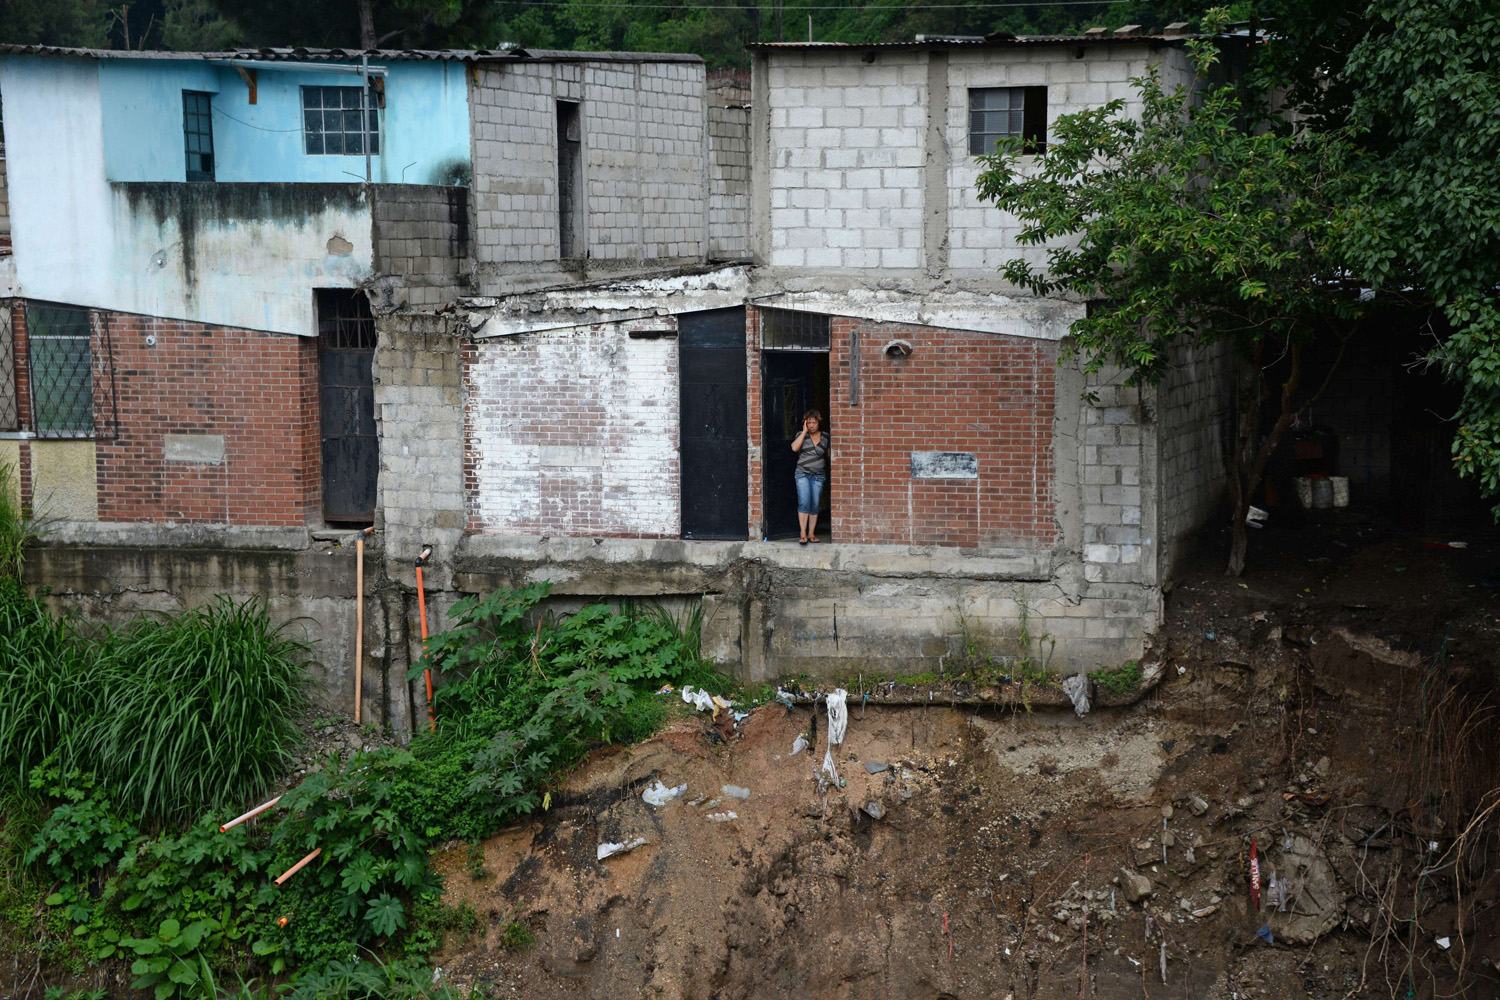 June 3, 2014. View of the homes at risk after part of one collapsed due to heavy rains in Villa Hermosa, San Miguel Petapa municipality, 20 km south og Guatemala City.